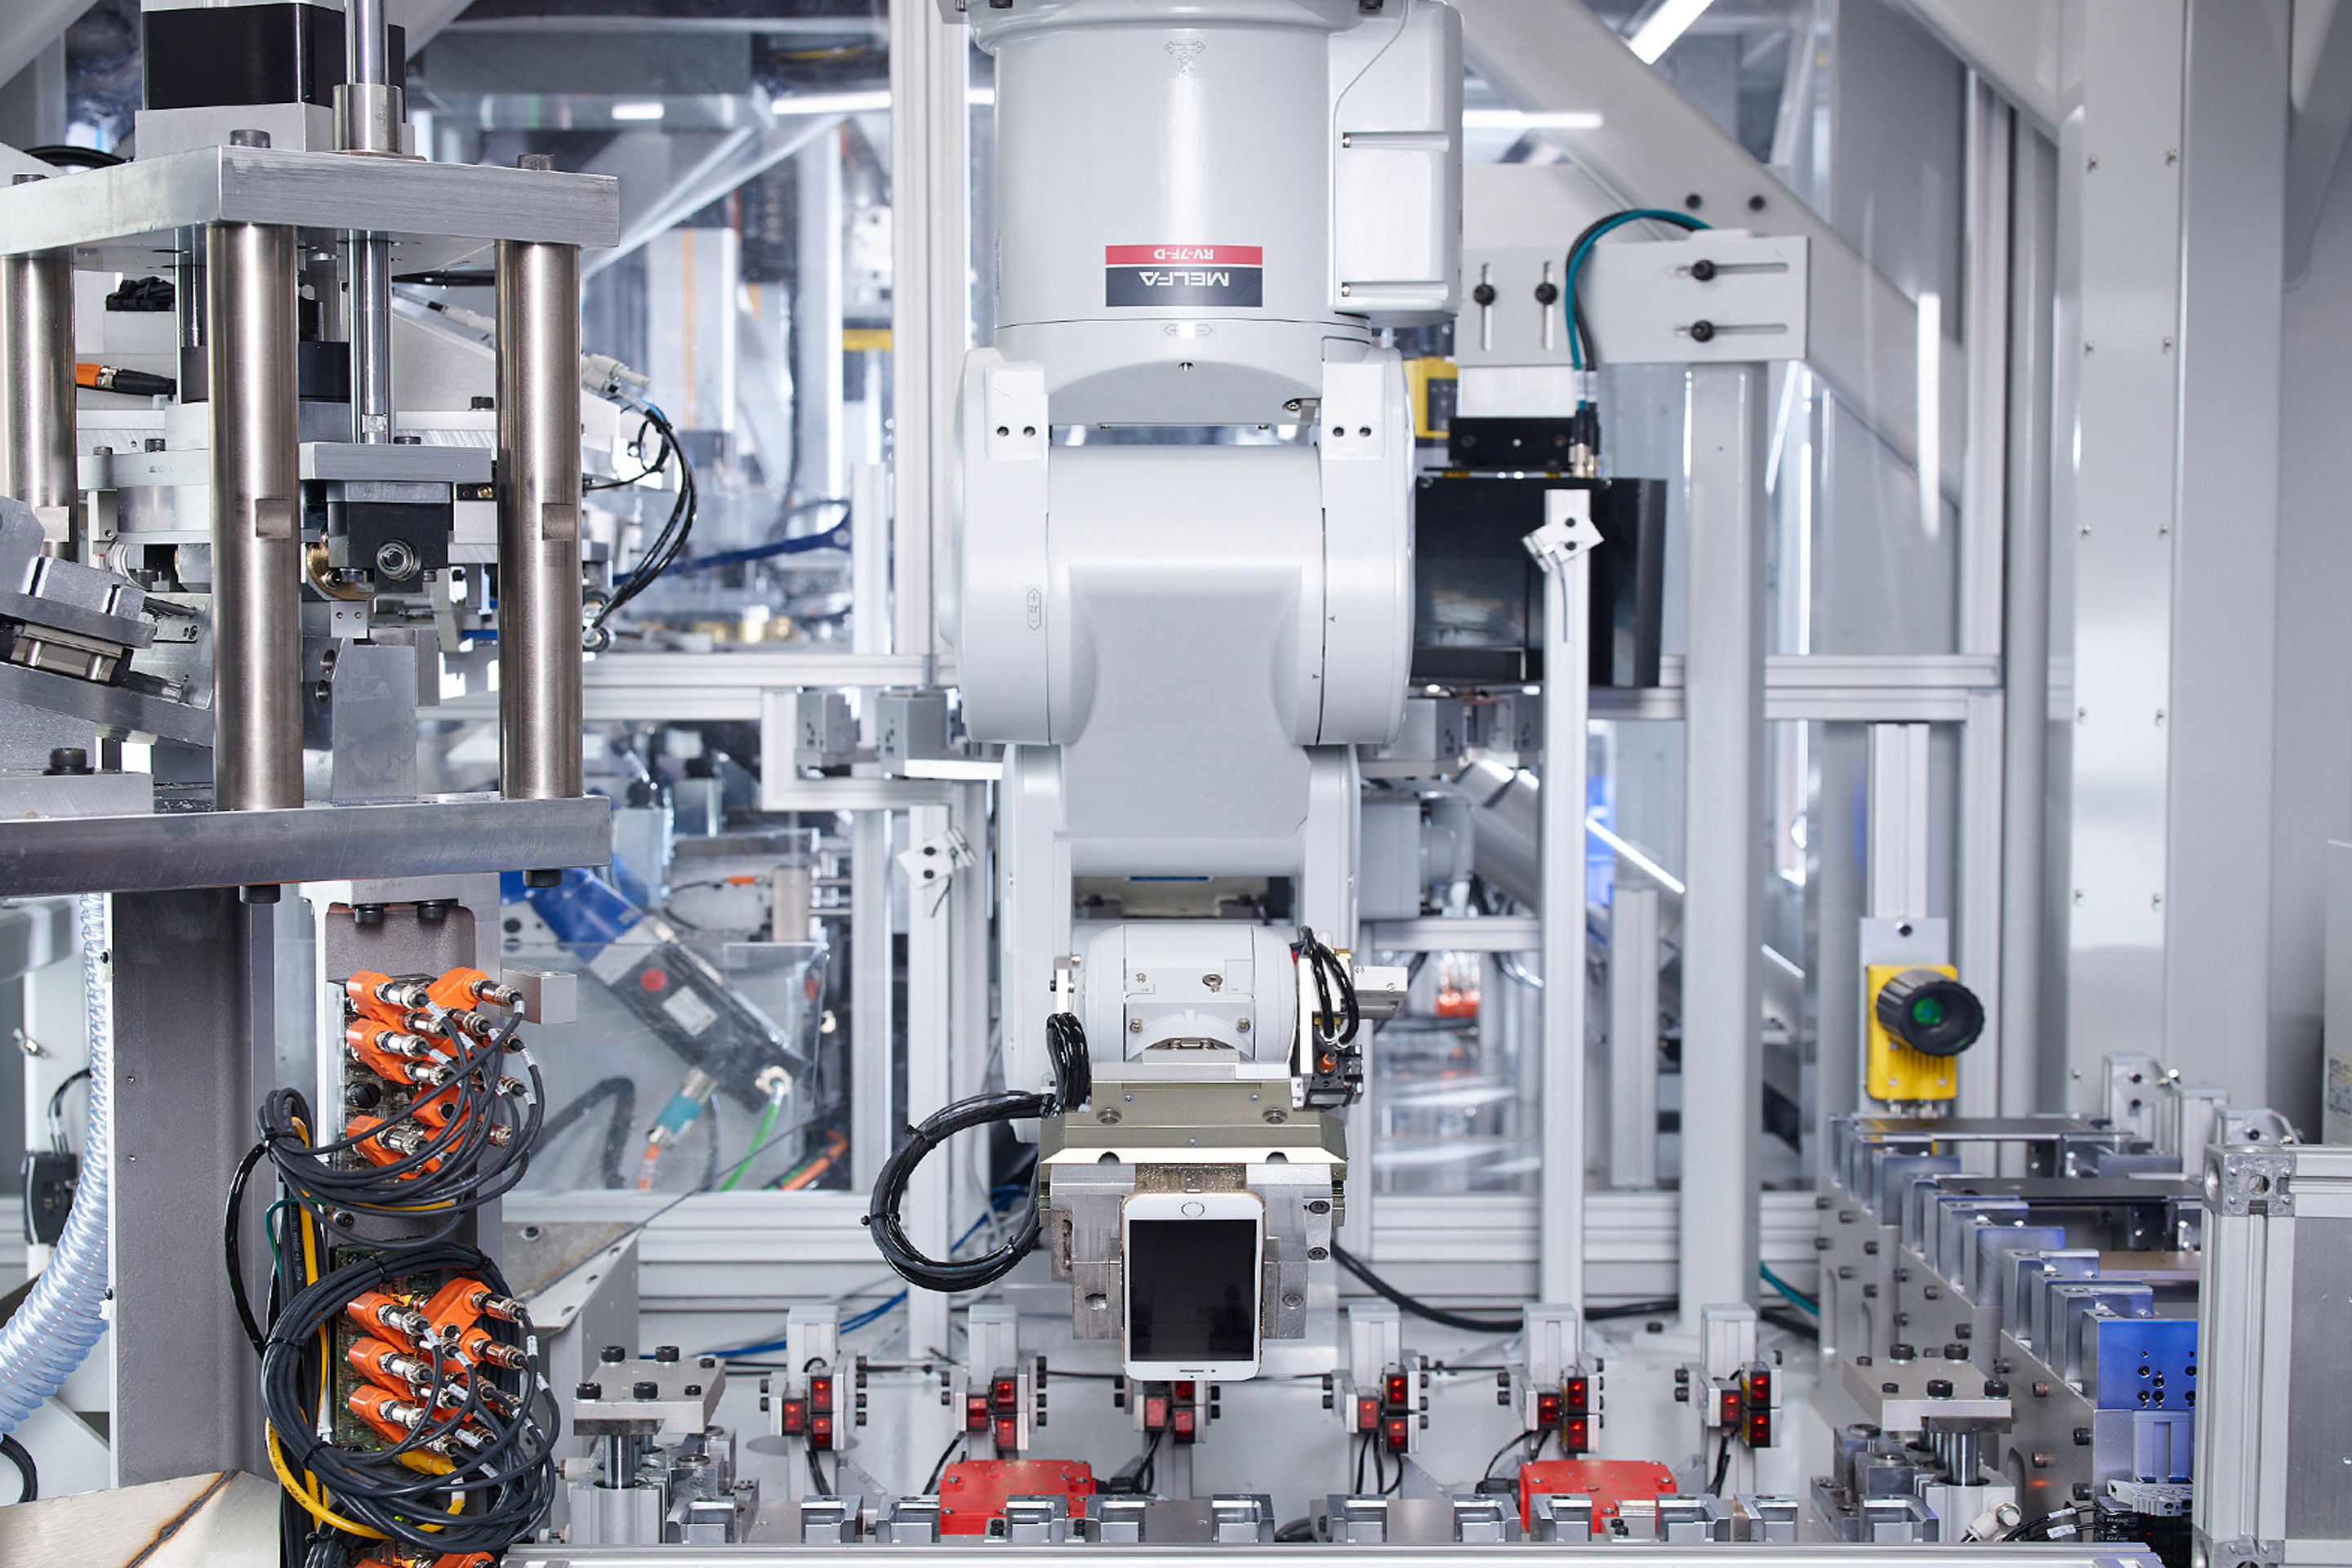 Daisy, Apple's recycling robot, can disassemble used iPhones returned to the company through trade-in programs.